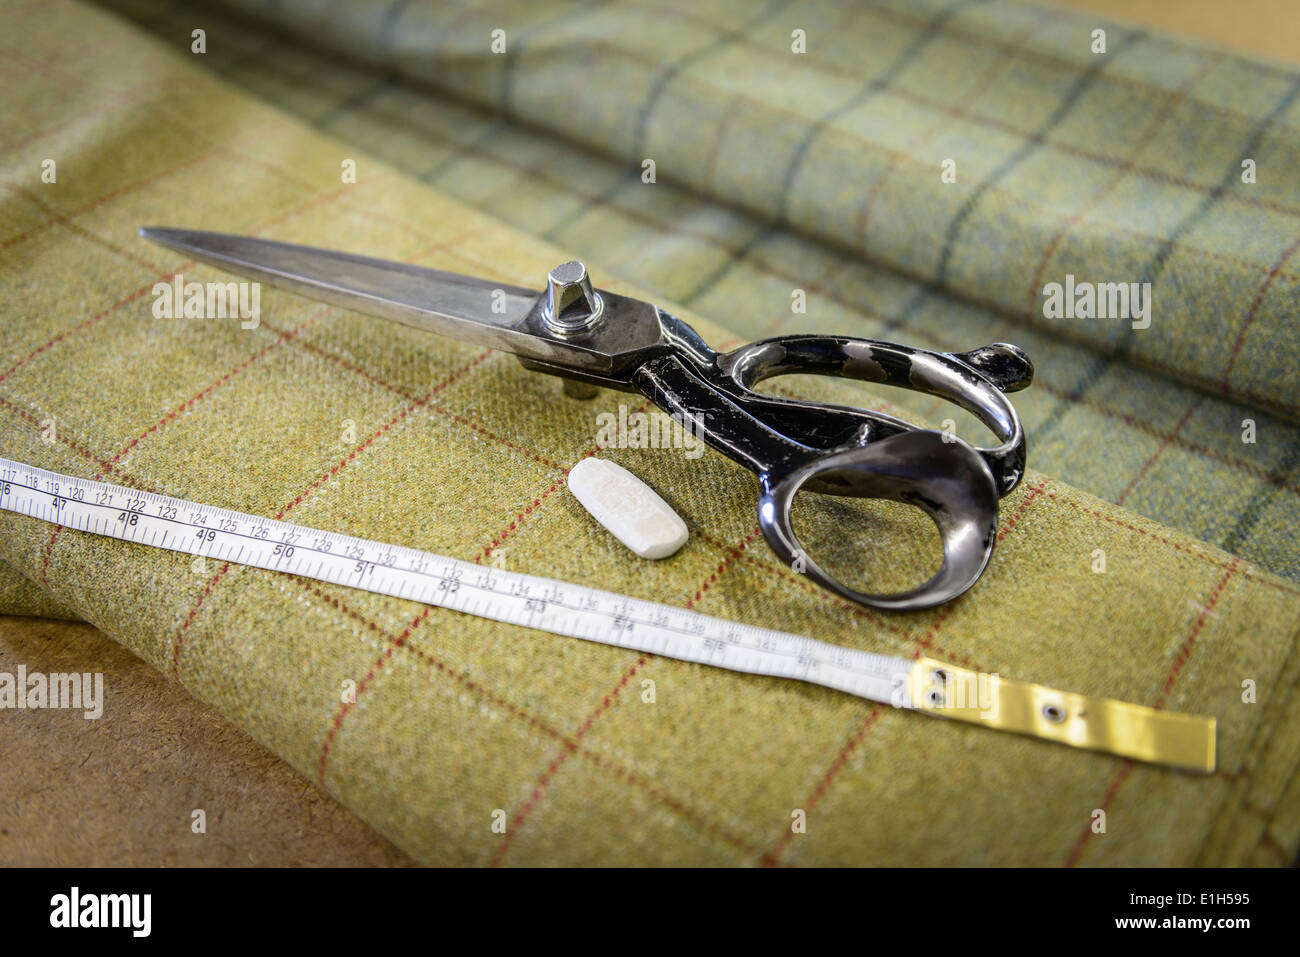 Harris tweed material and scissors in clothing factory - Stock Image